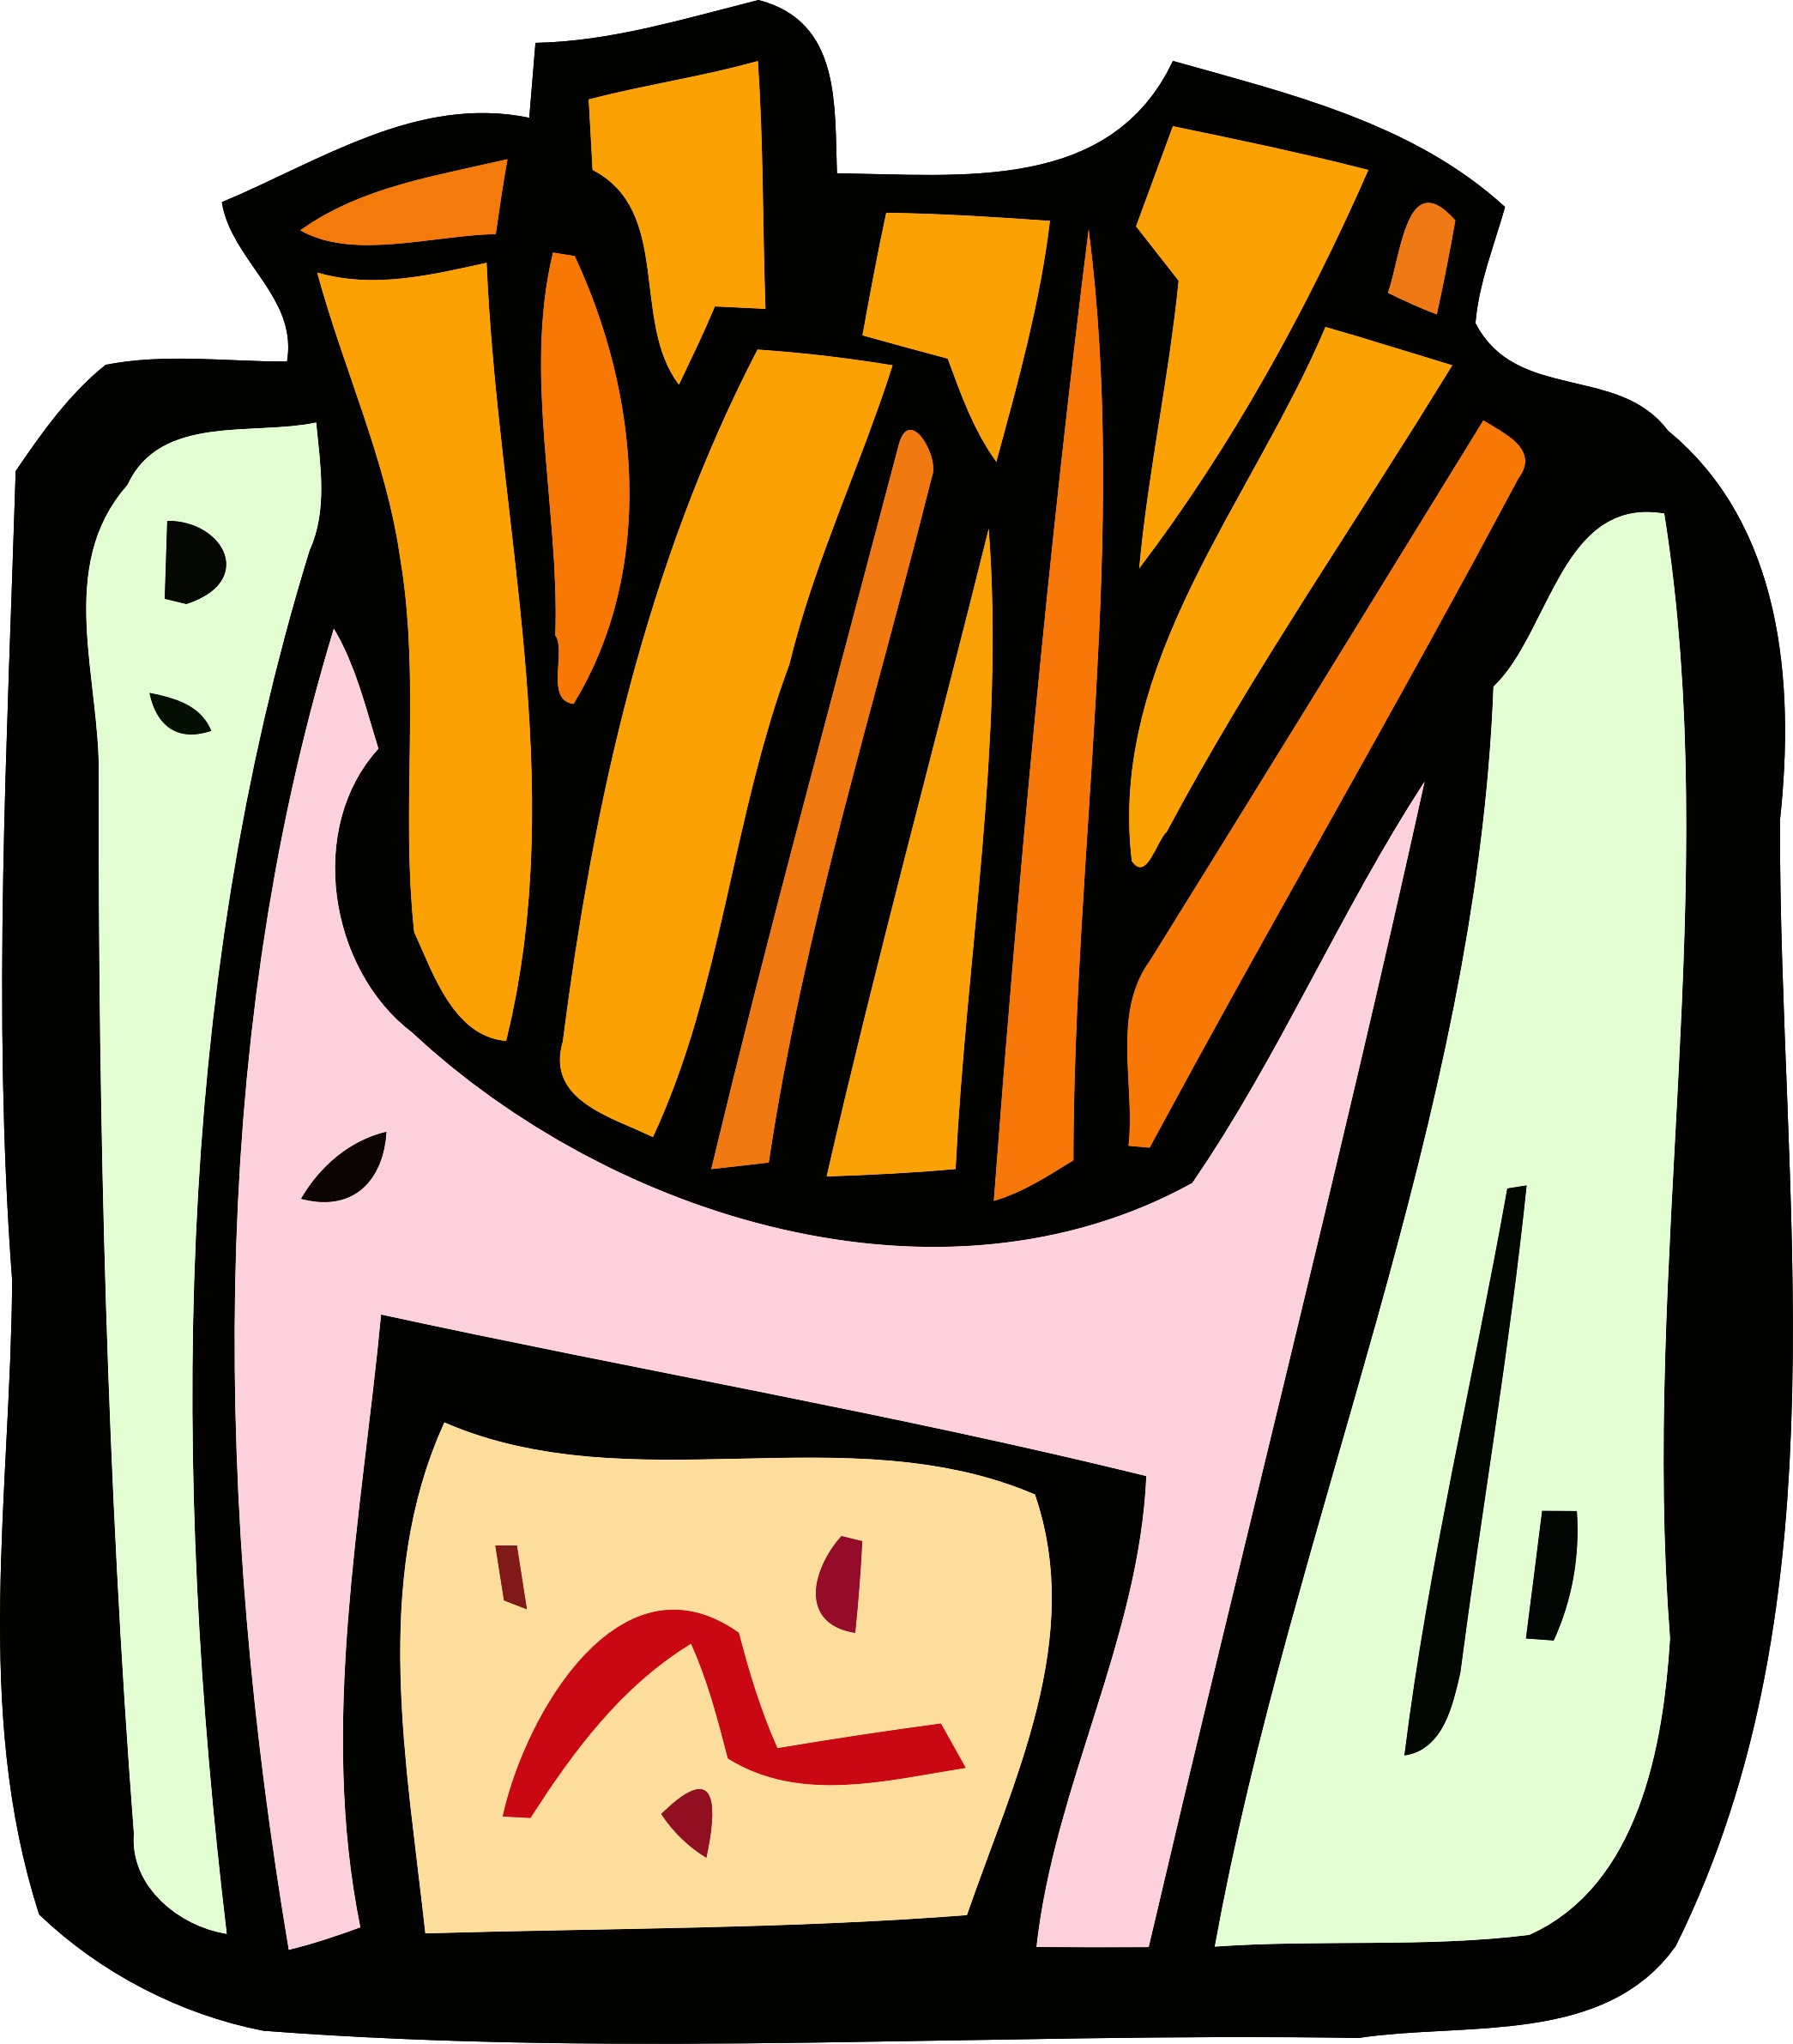 Food and drink icon. Drinks clipart fry